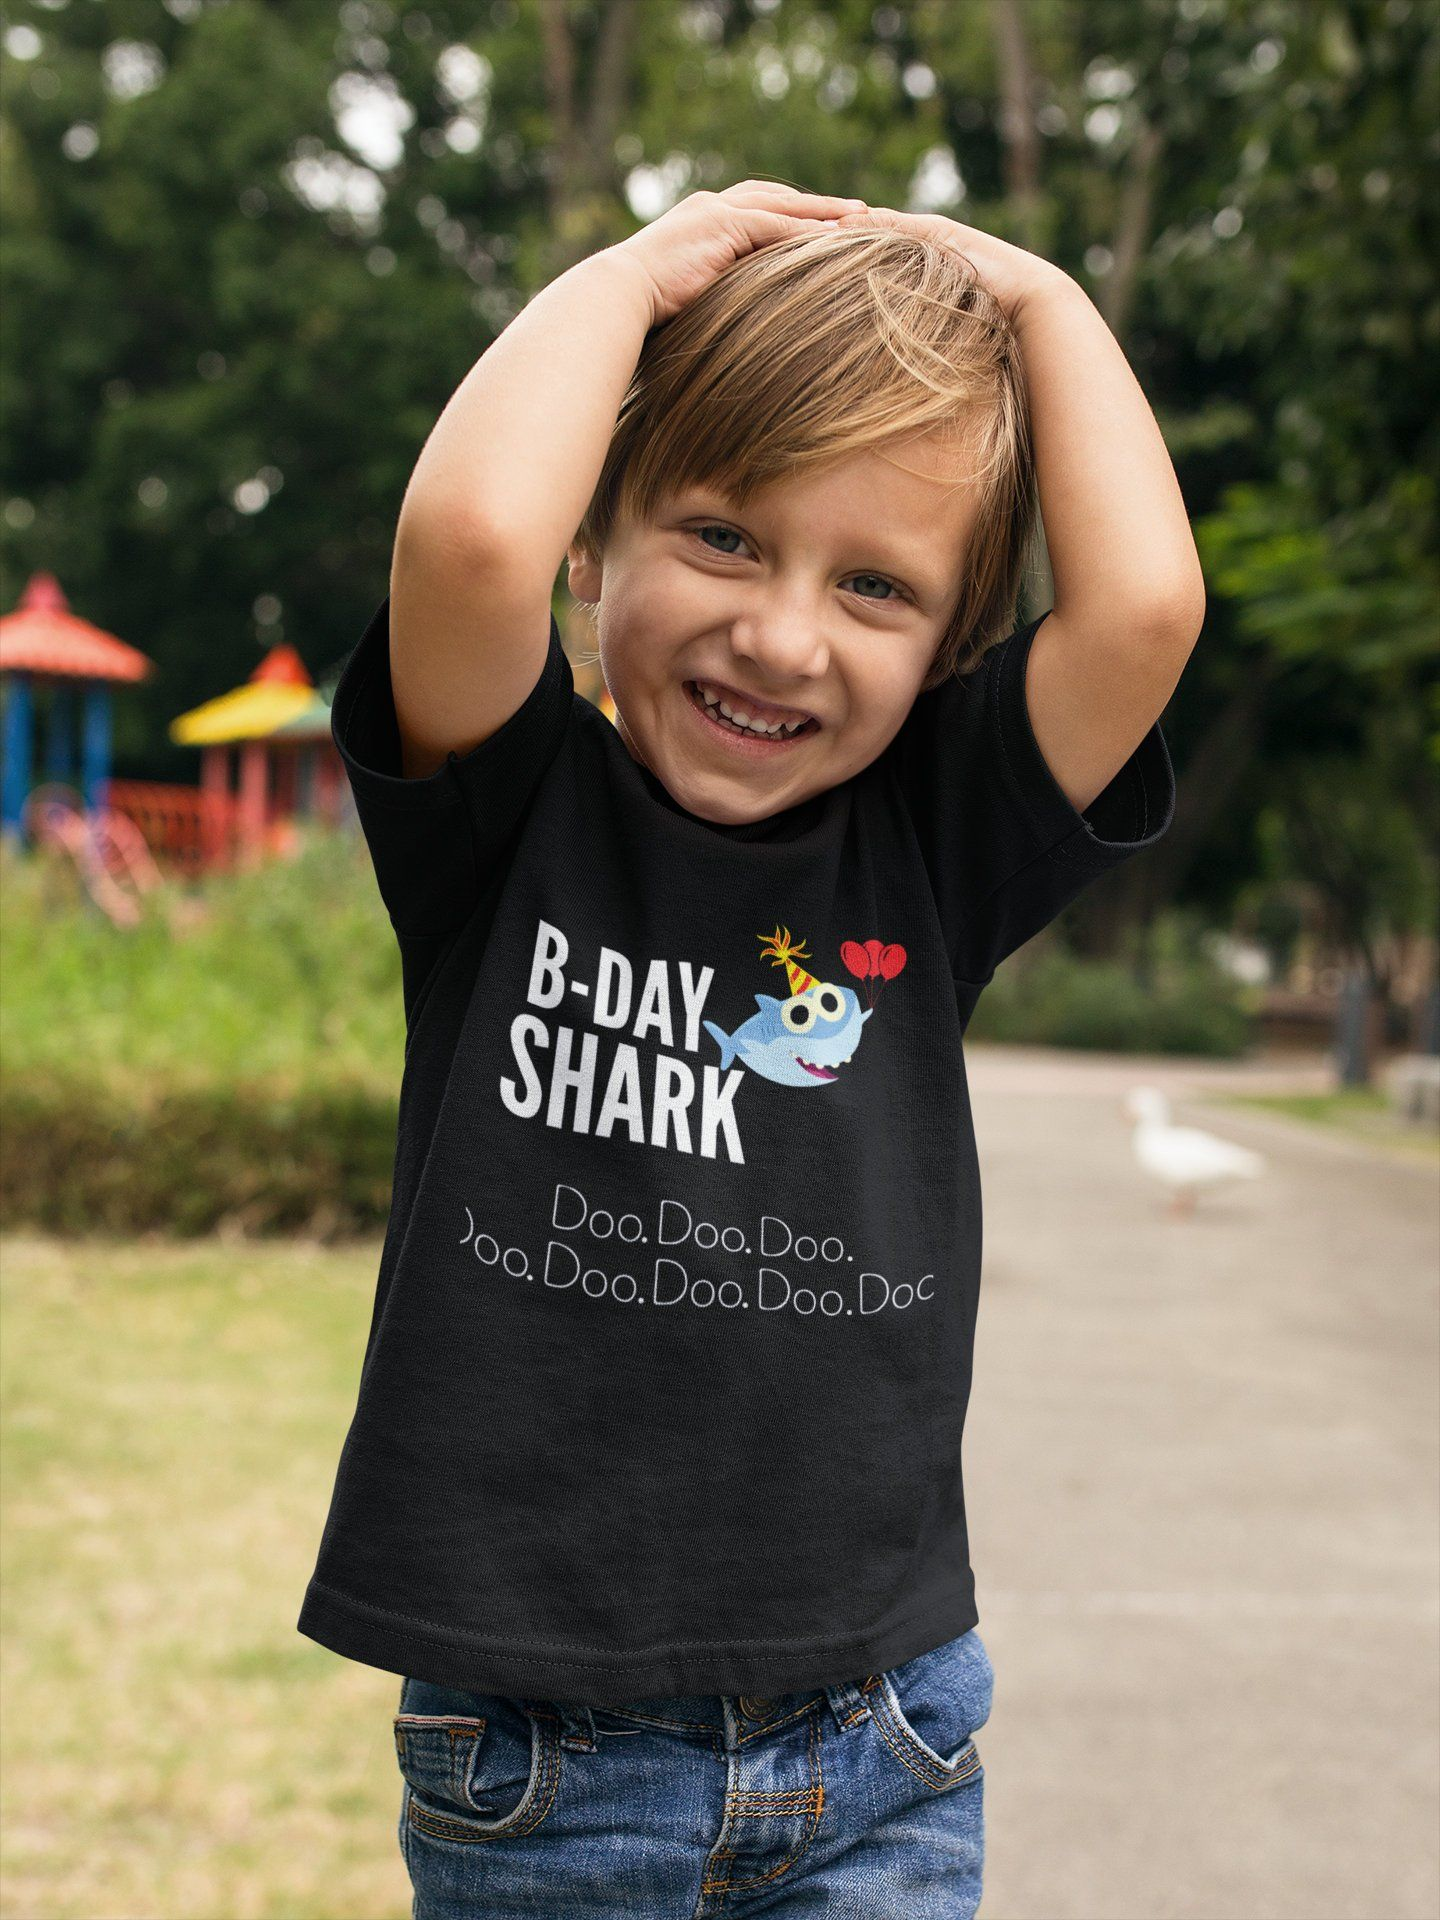 2d1e97a0 Custom 1st Birthday Shark Shirt Doo Doo for family Shirts, toddler 2t 4t boy  and